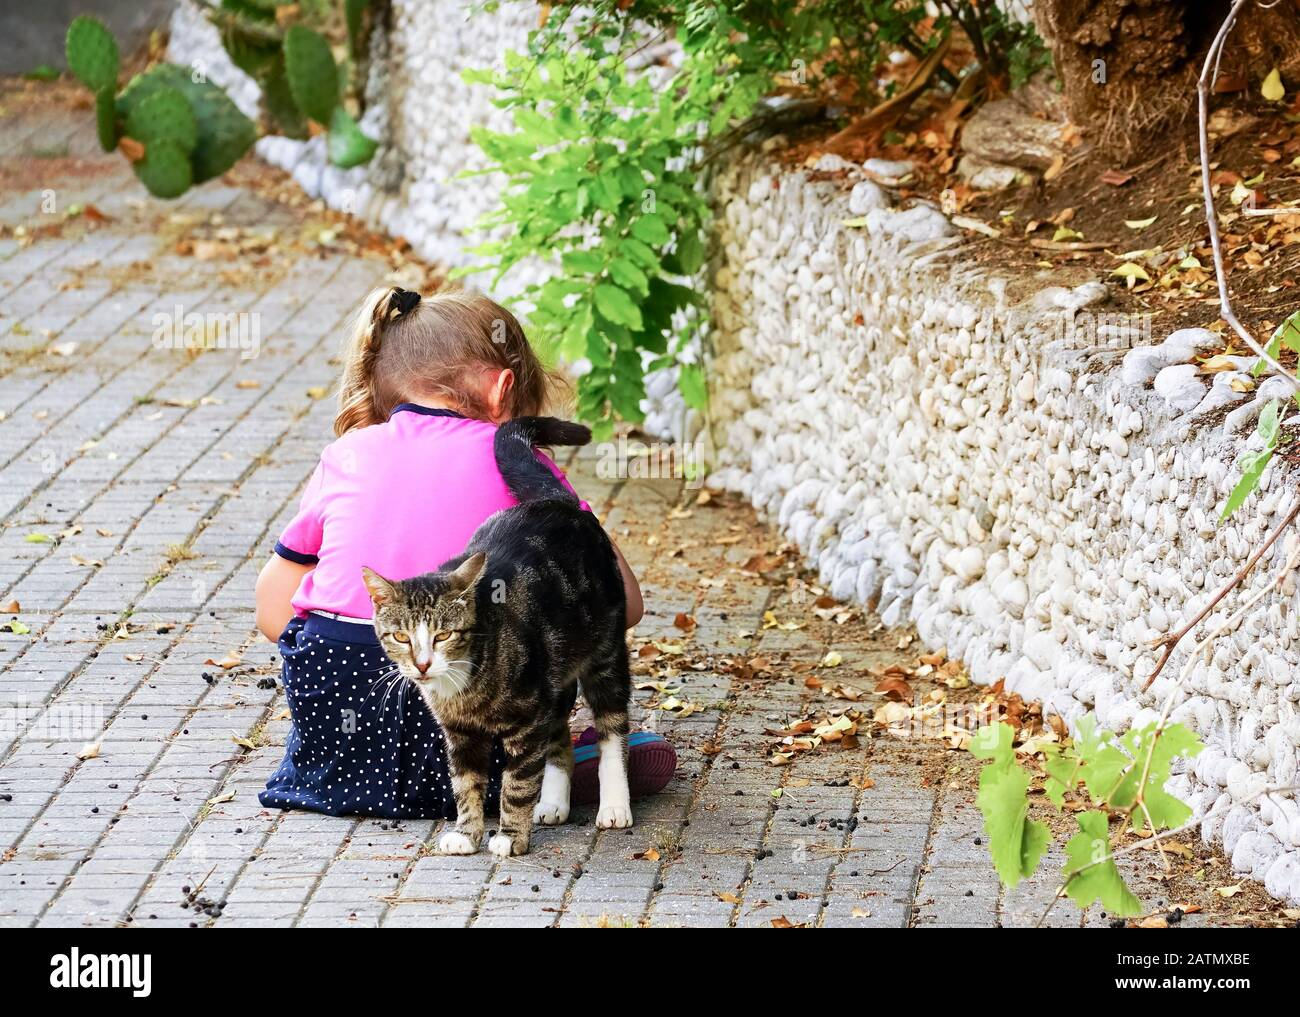 The cat snuggled up to the sitting girl on the street . Yalta. Crimea. Stock Photo